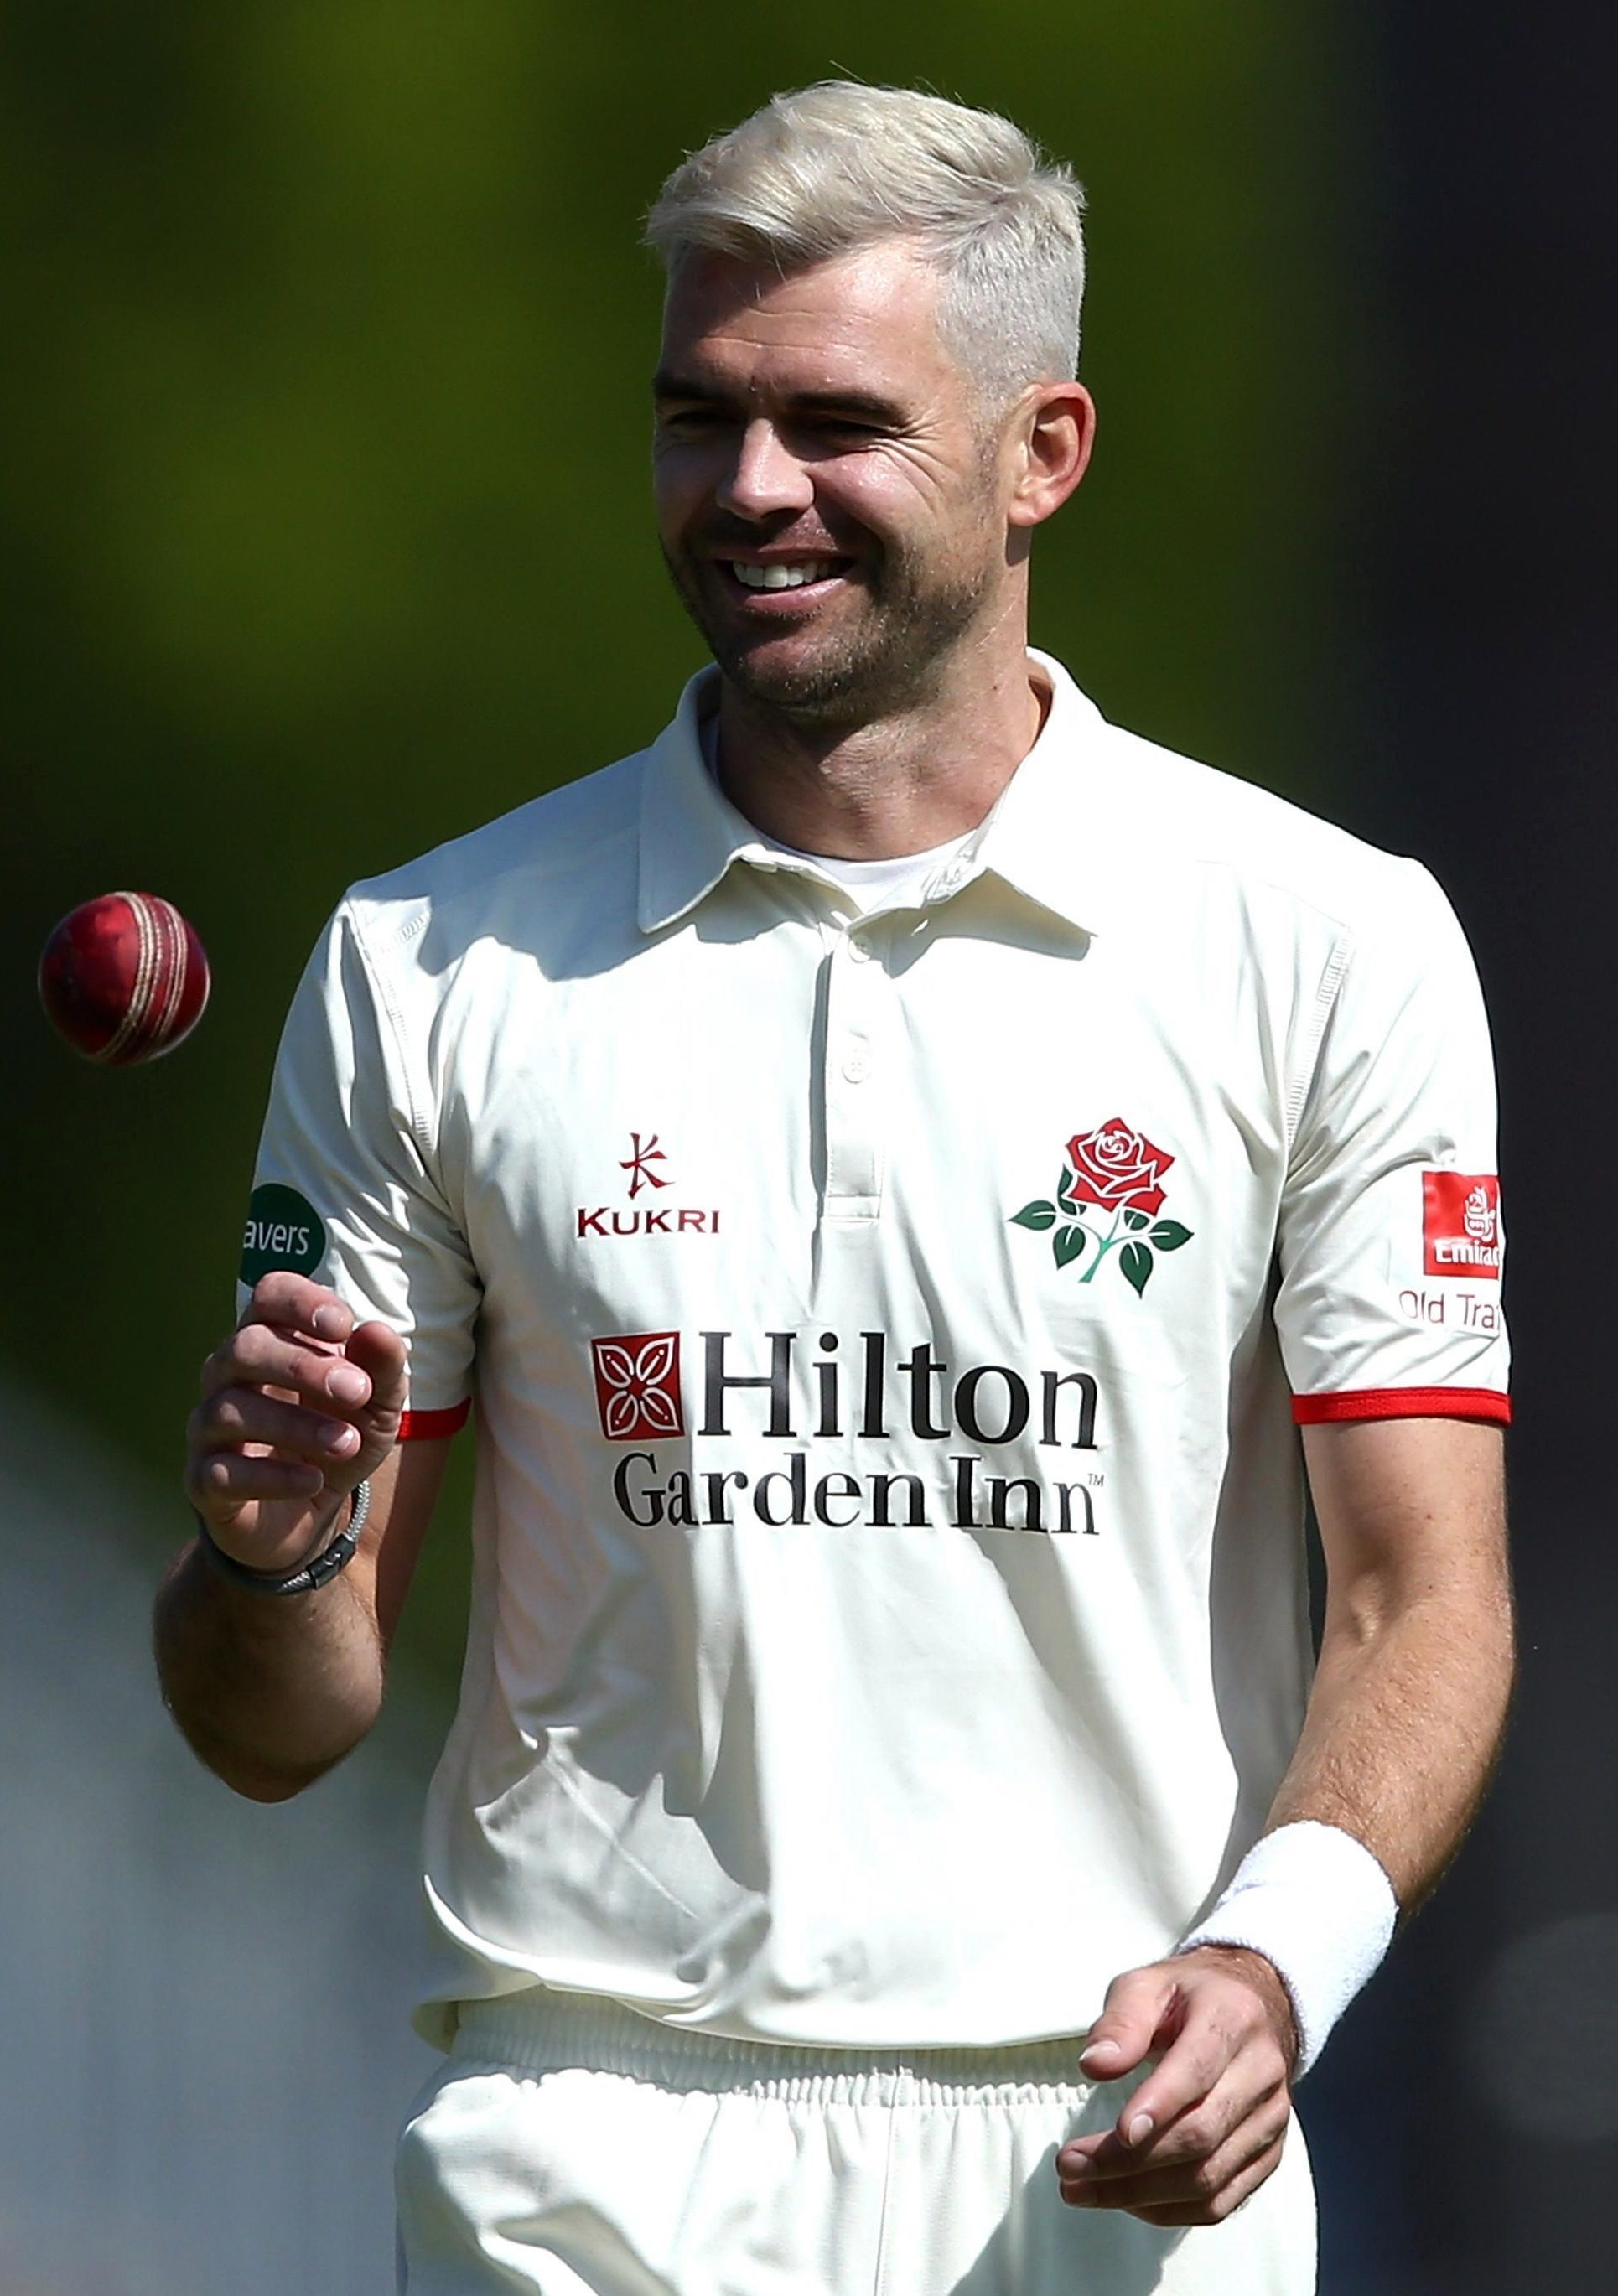 James Anderson has ditched the peroxide blond hair and jokes that, at the age of 35, his mid-life crisis is over - for now